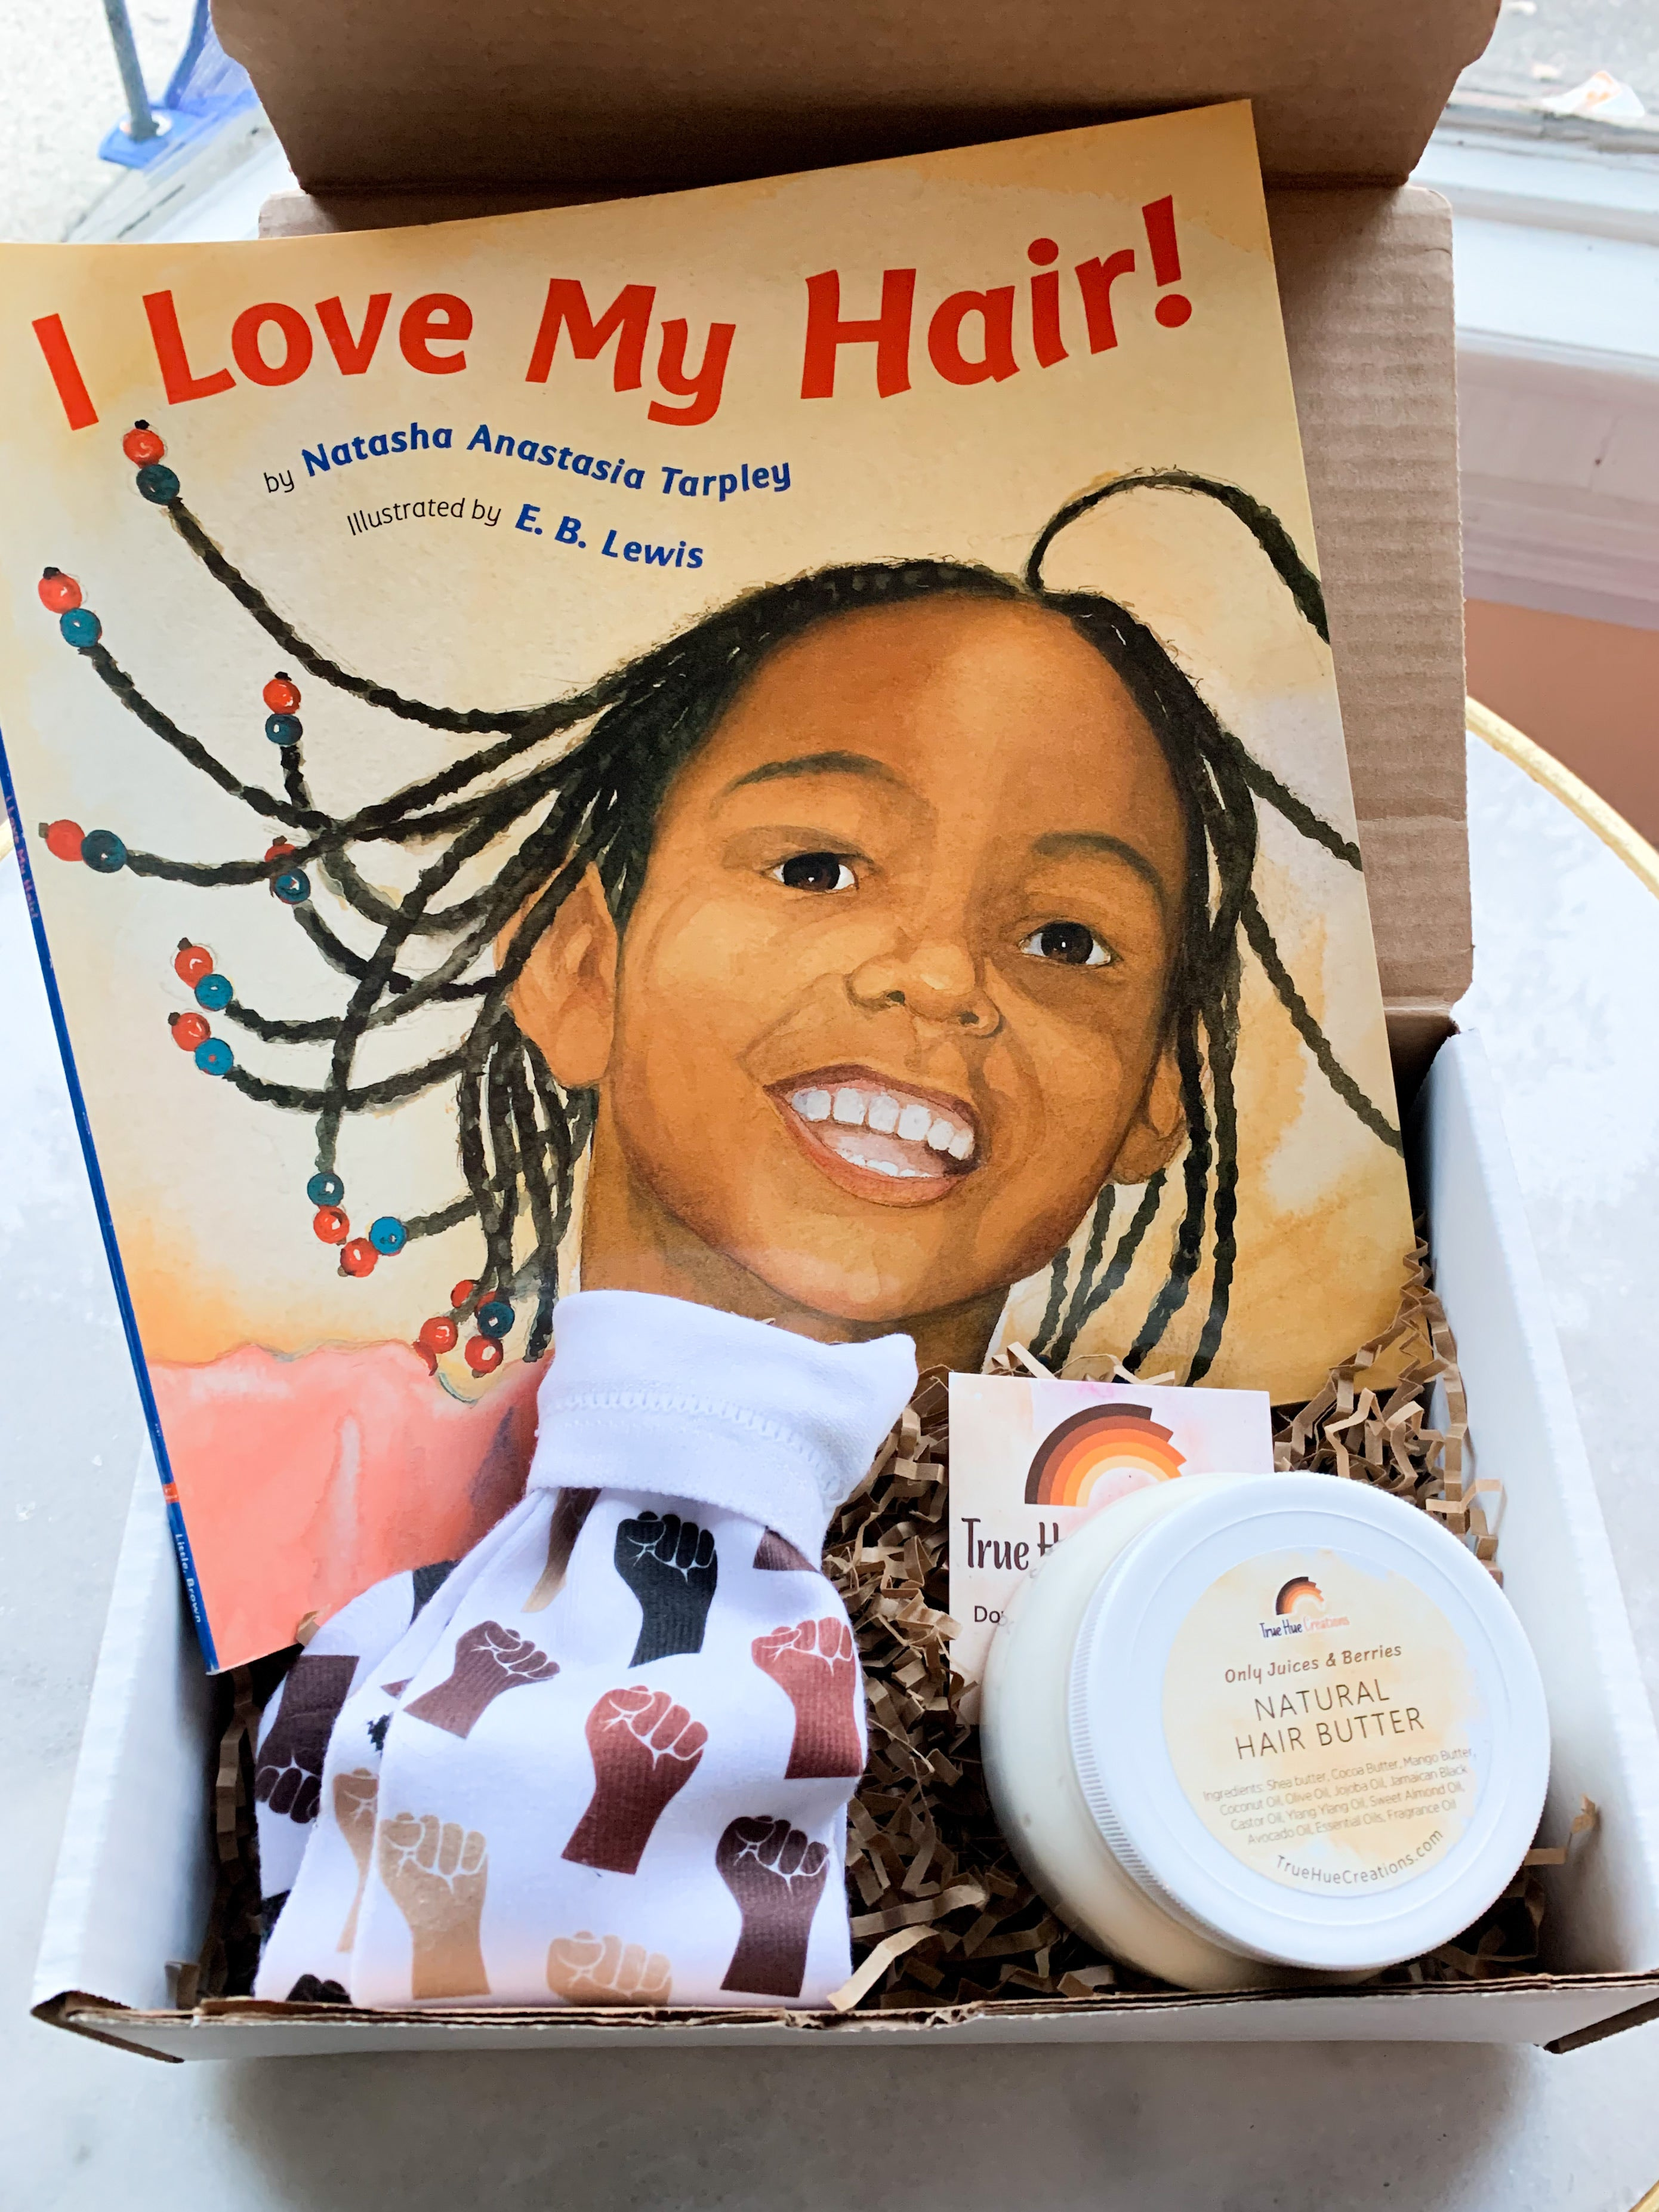 The I love My Hair! Box